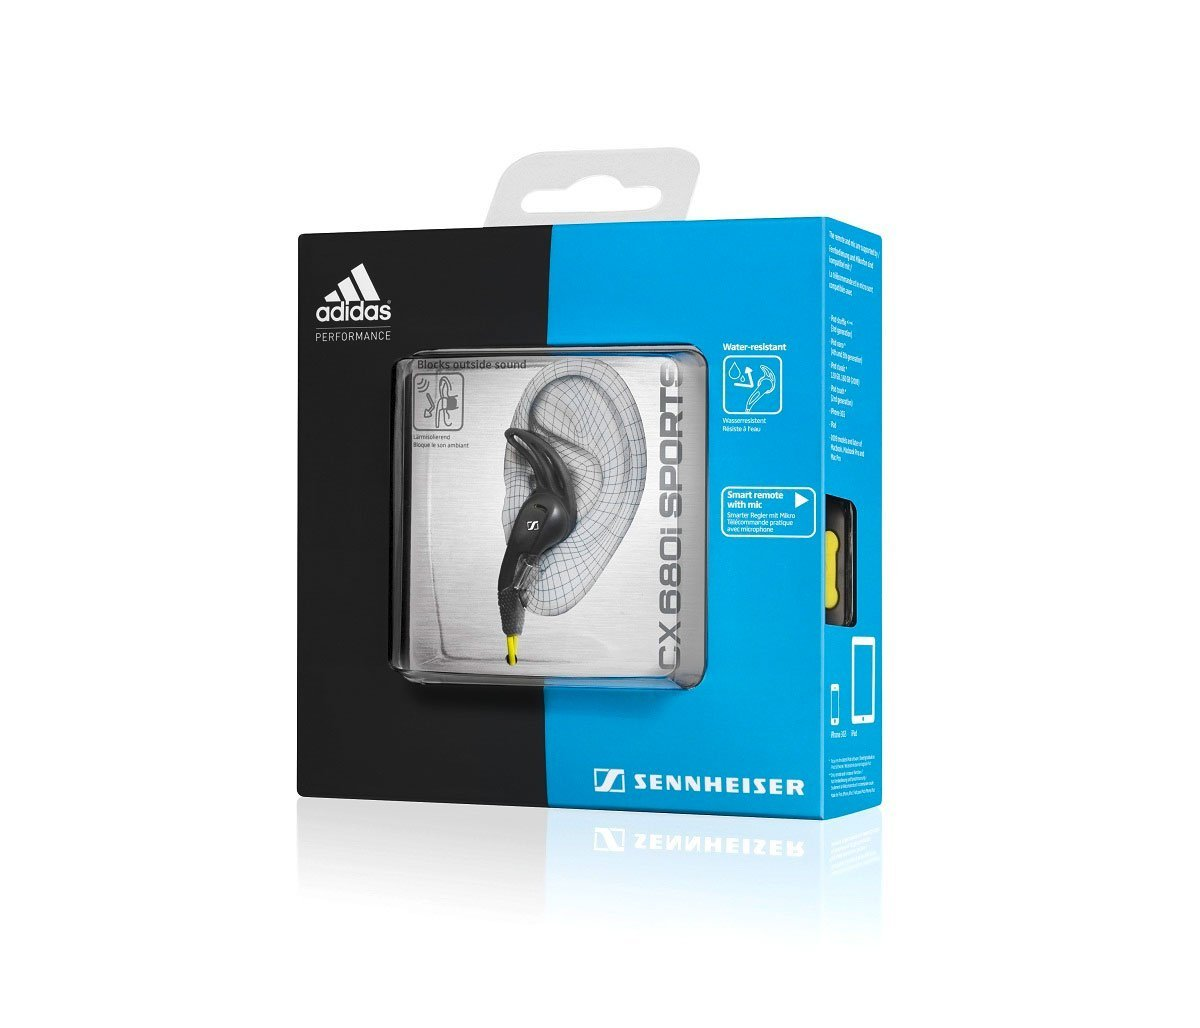 Sennheiser Adidas CX 680i Sports Headset